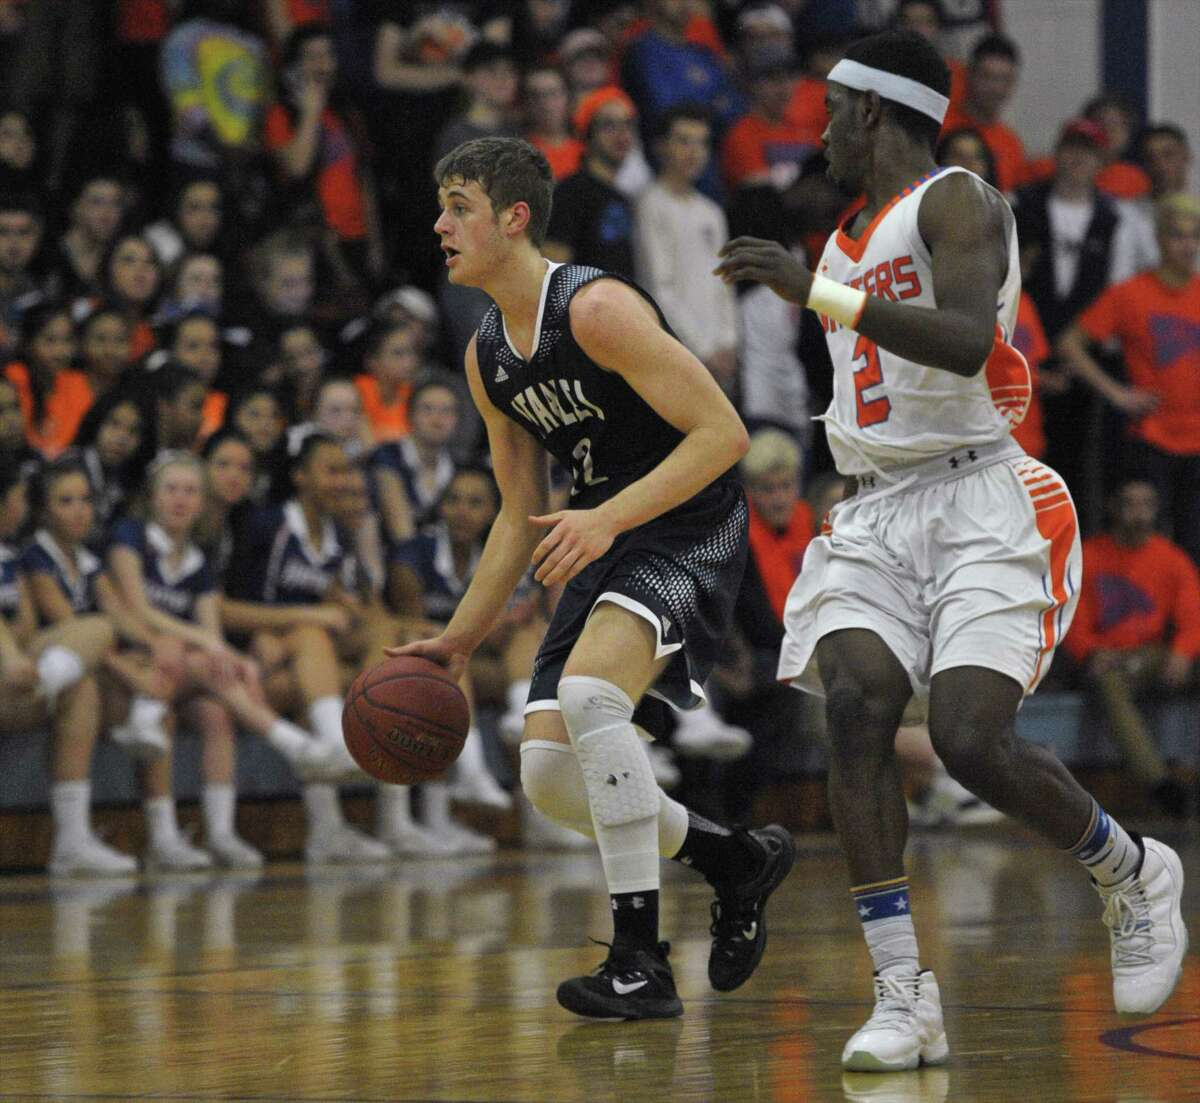 Photographs from the boys first round Connecticut Class LL basketball game between Staples and Danbury high schools, on Tuesday night, March 8, 2016, at Danbury High School, Danbury, Conn.